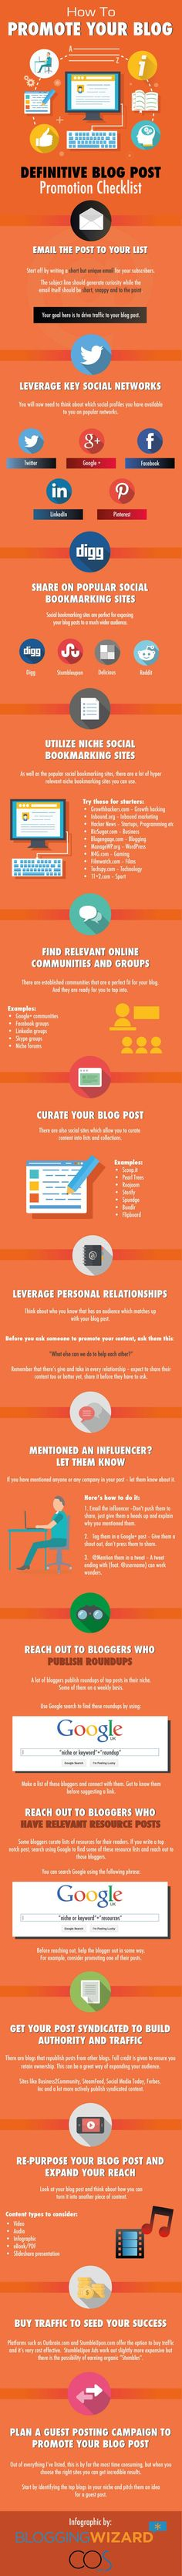 A simple guide to promote your blog in 2015